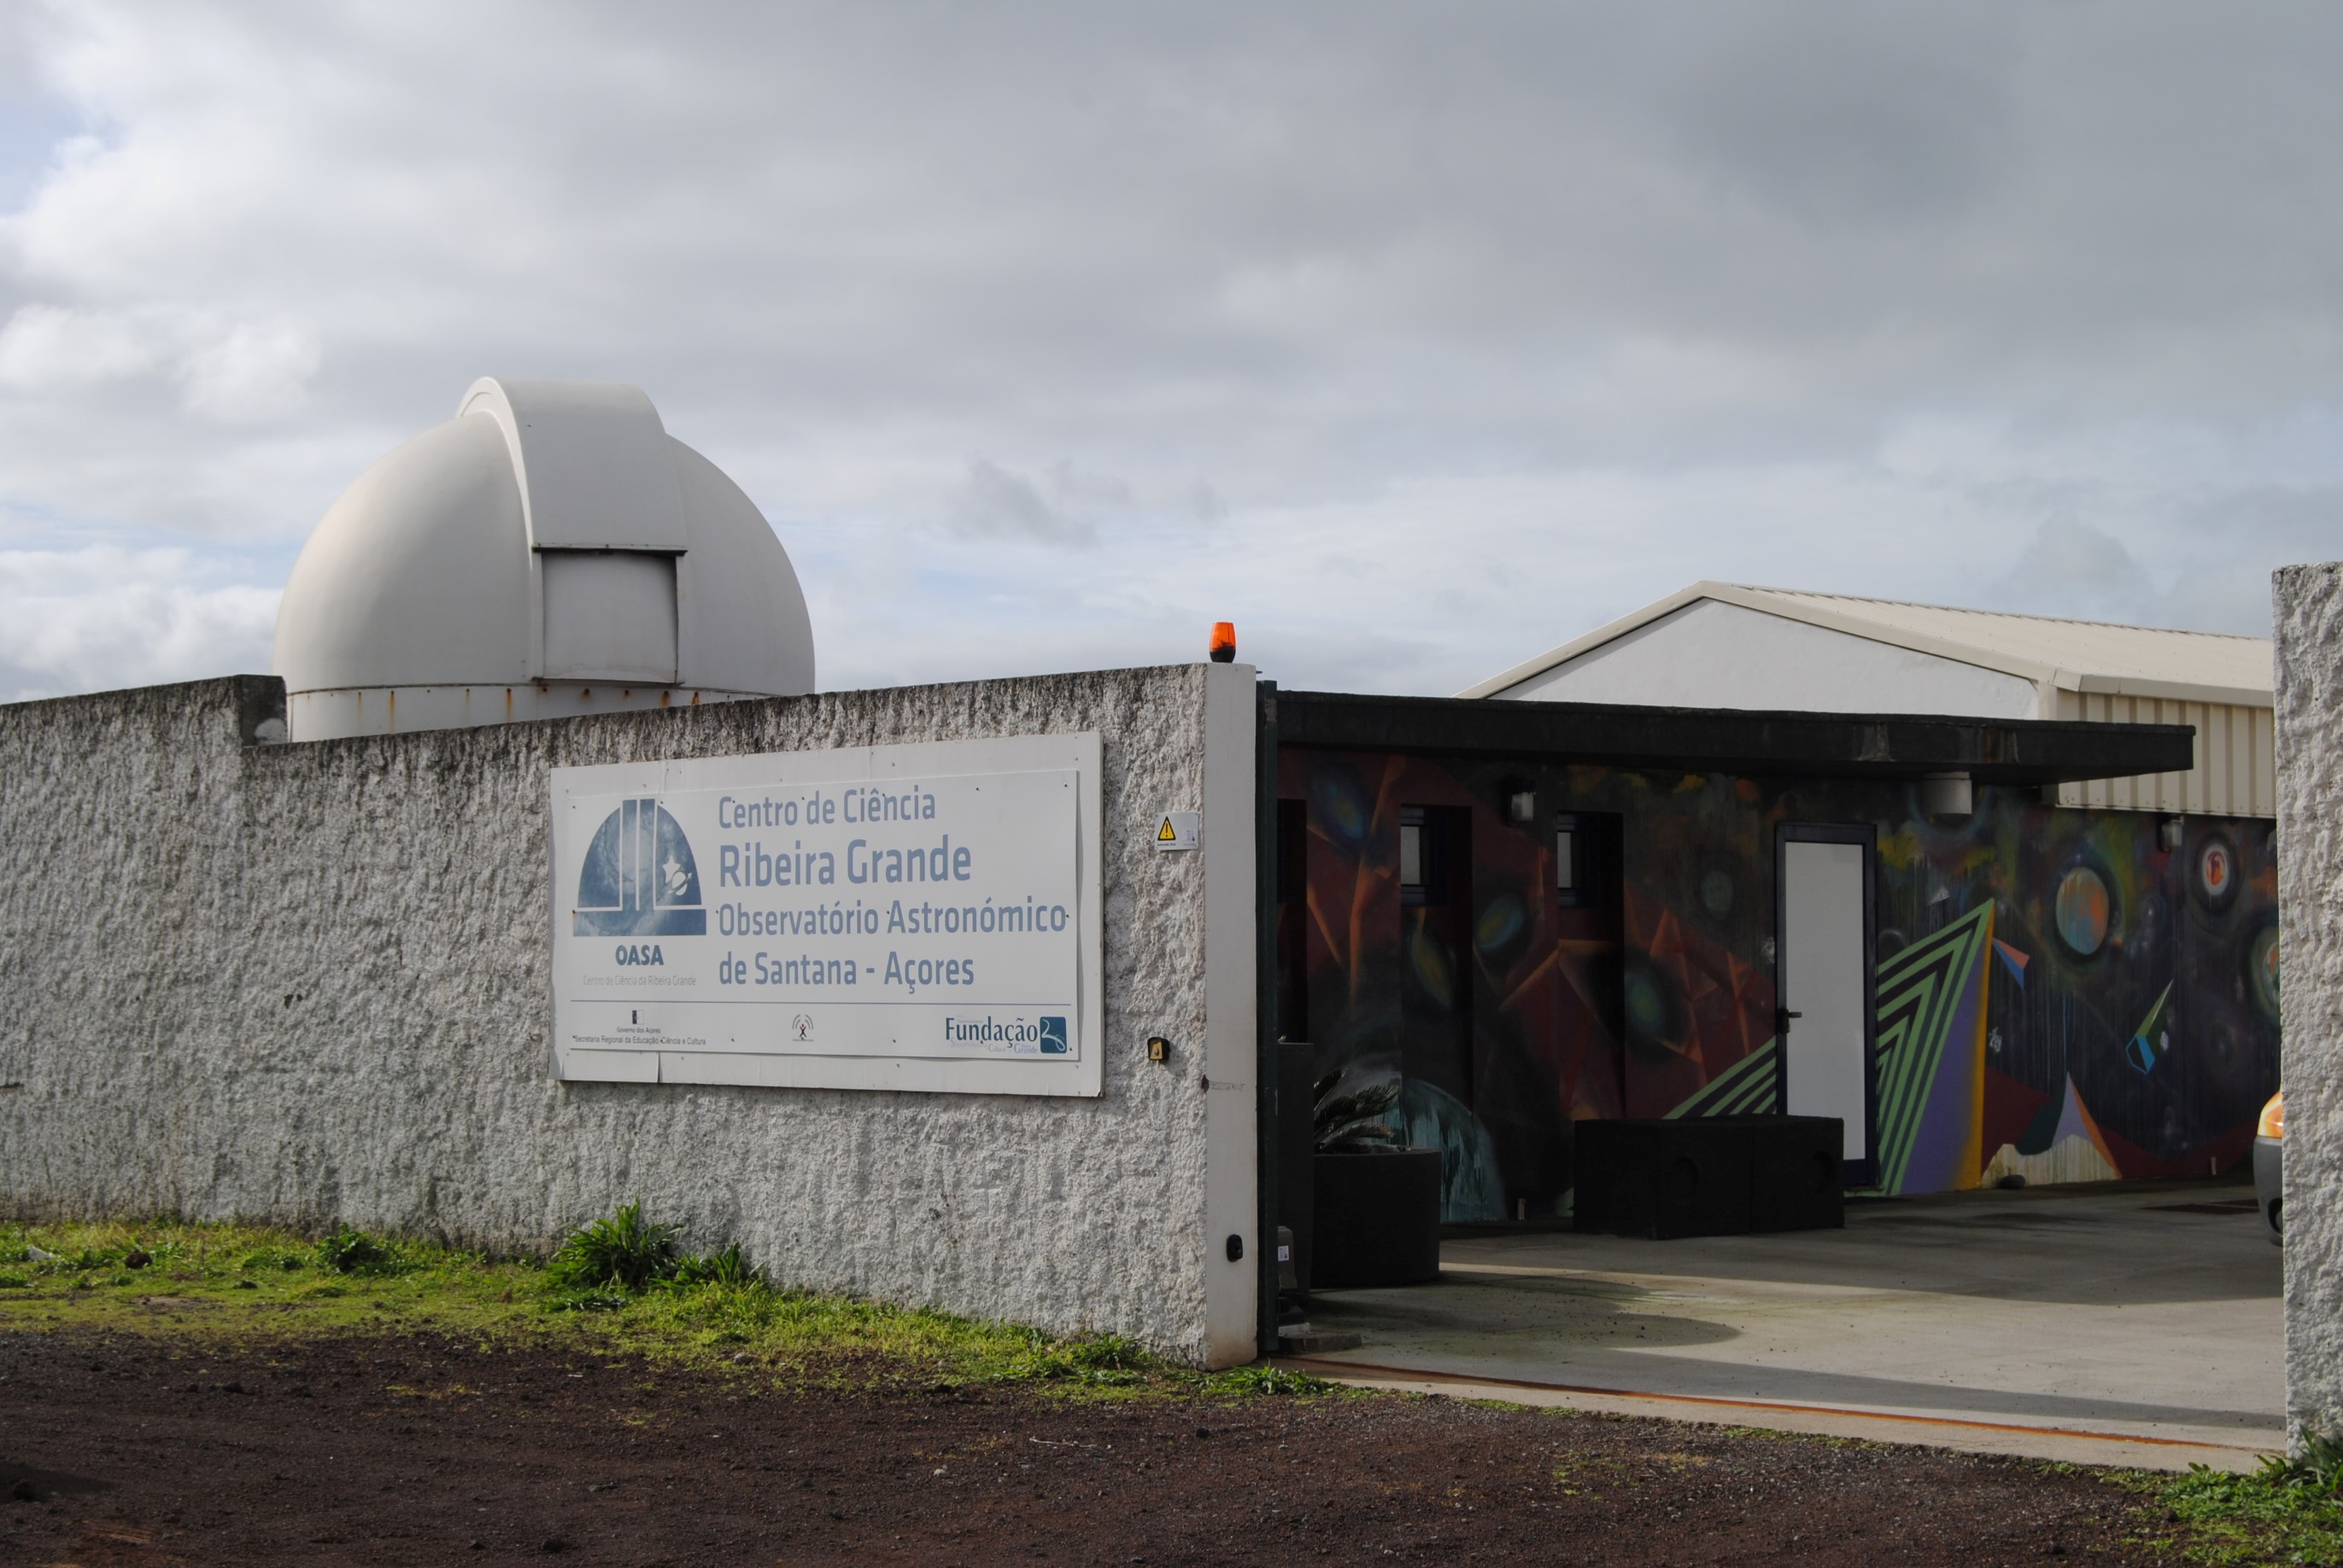 Astronomical Observatory center of Santana, Azores - OASA